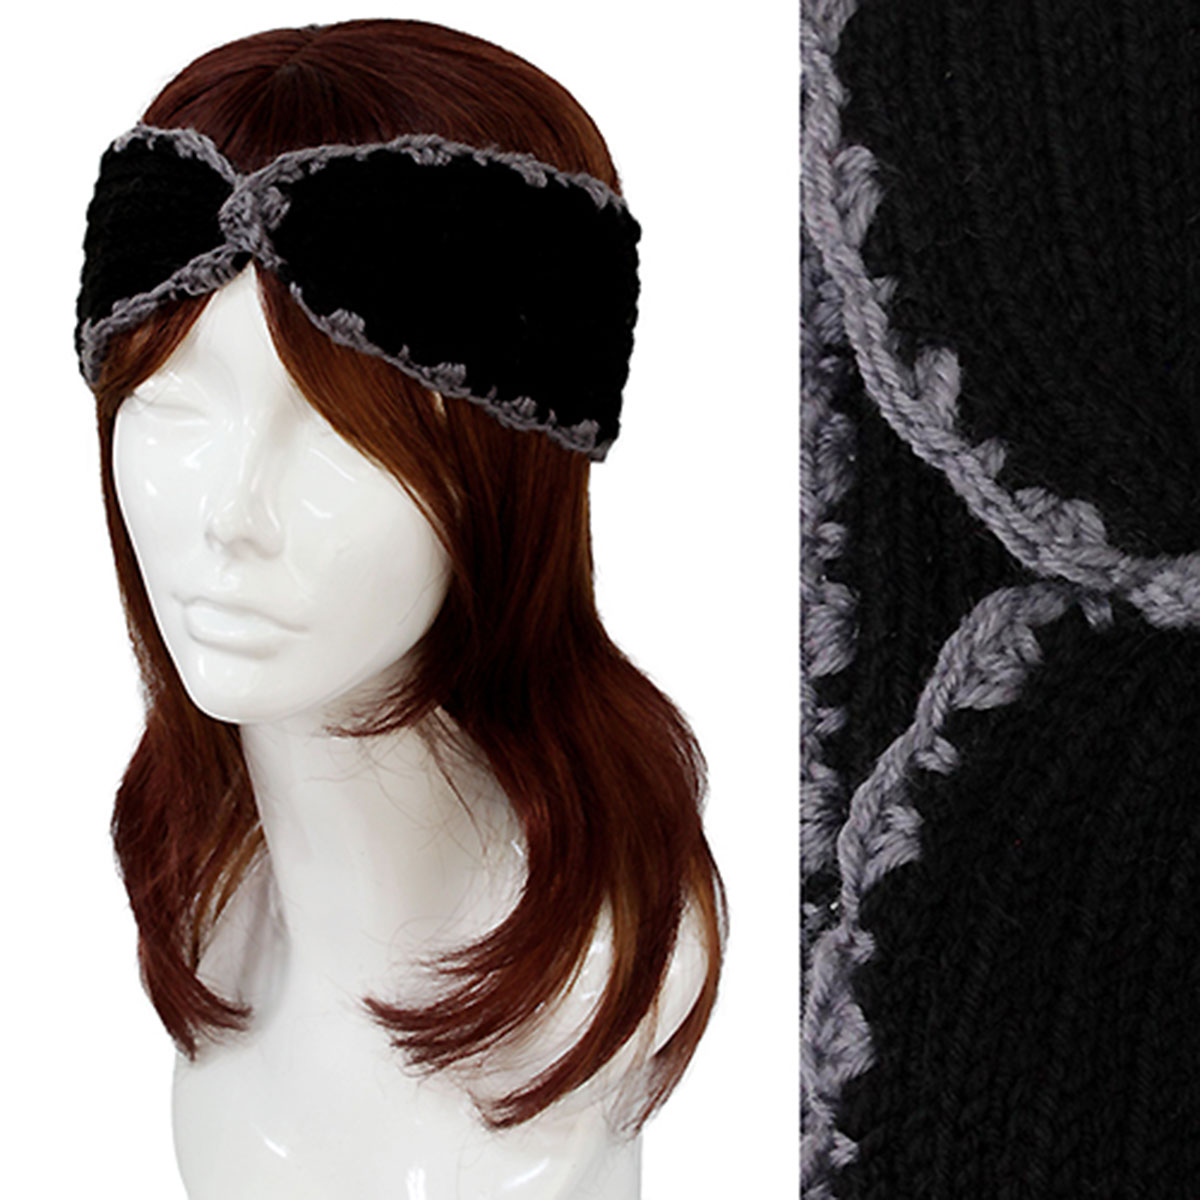 Knitted Head Wraps - #2001 Black Knitted Head Wrap